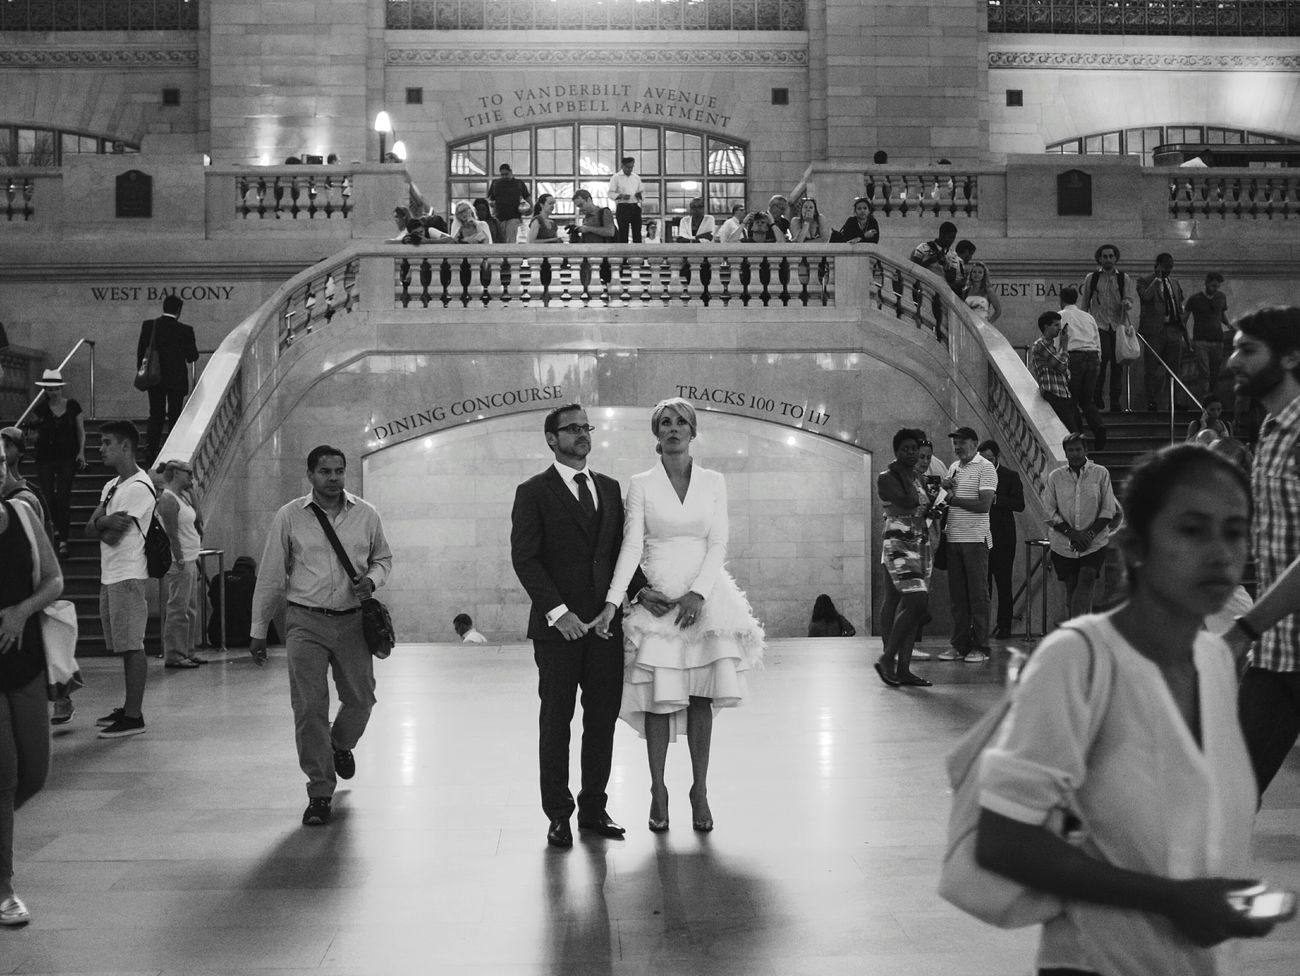 Streetphotography Grittystreets Men Women Passenger Travel Day Indoors  Newyorknewyork Newyorkcity Blackandwhite Large Group Of People People Archival Grandcentralterminal NYC Wedding Followme